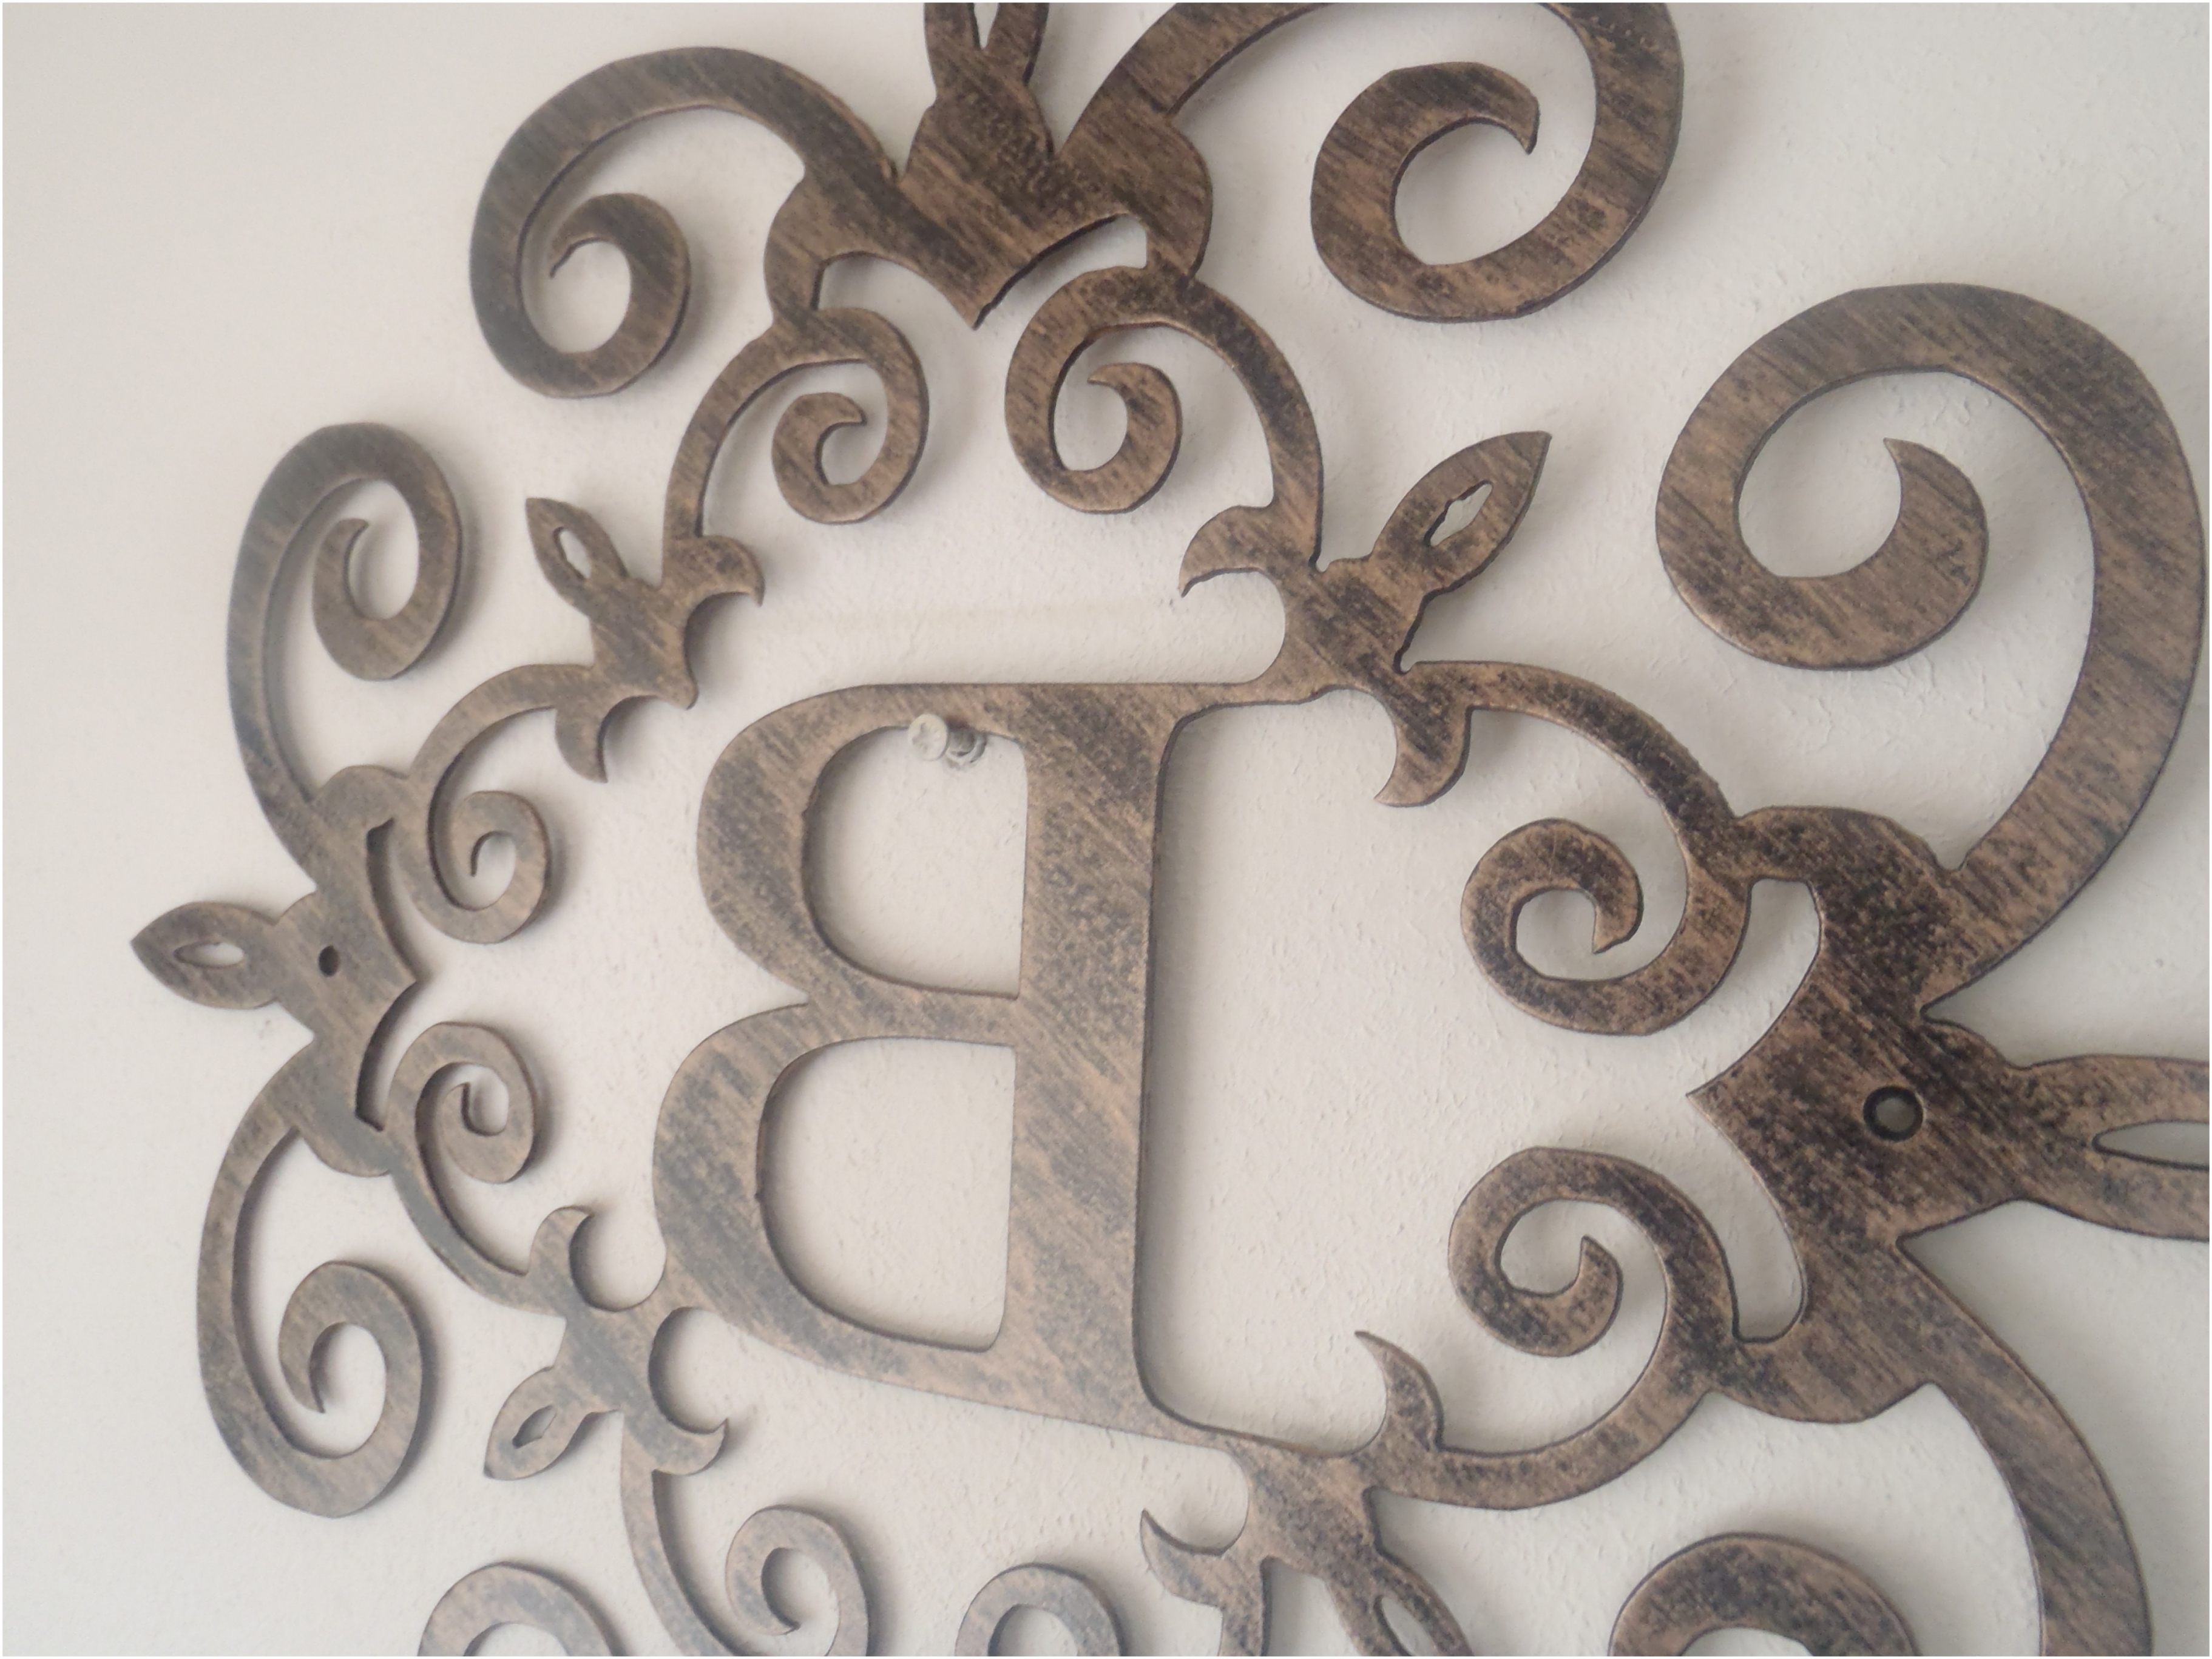 Metal Letter Wall Art Inside Newest Metal Letter Wall Art Picture – Vaydepxinh (View 4 of 15)